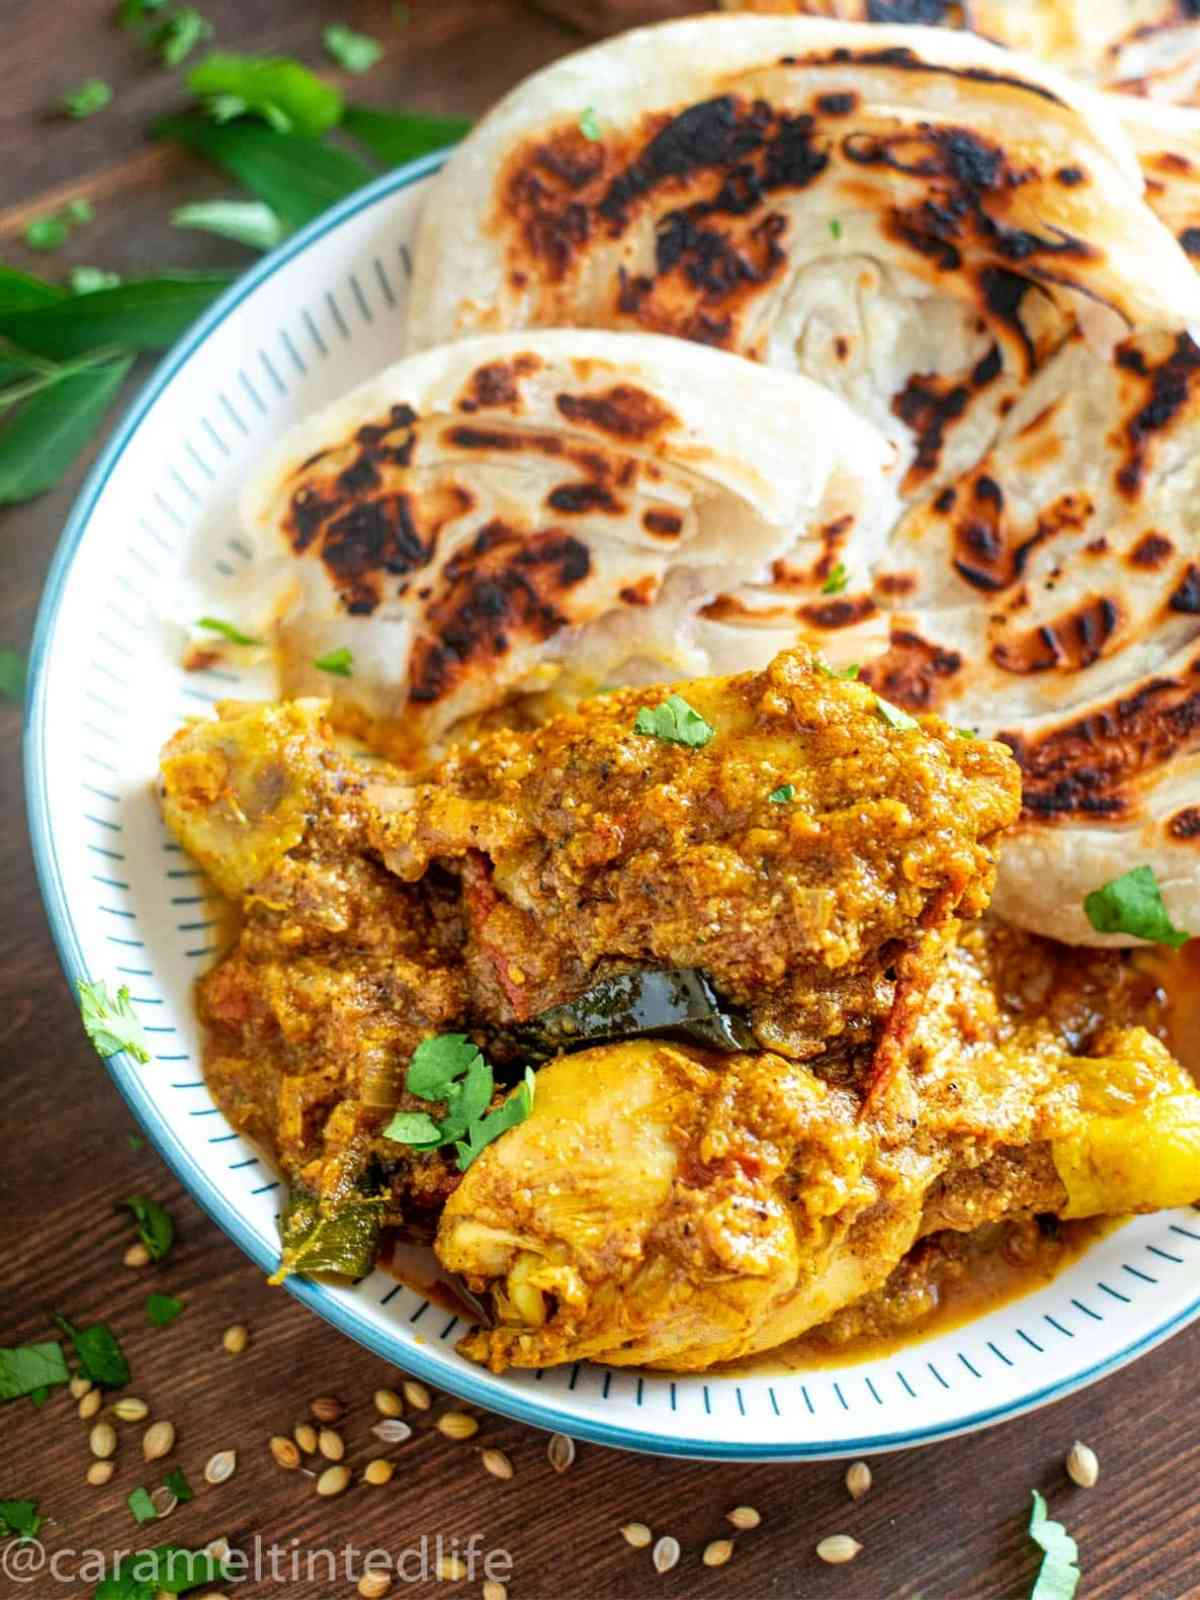 Chicken chettinad curry on a plate with malabar parotta